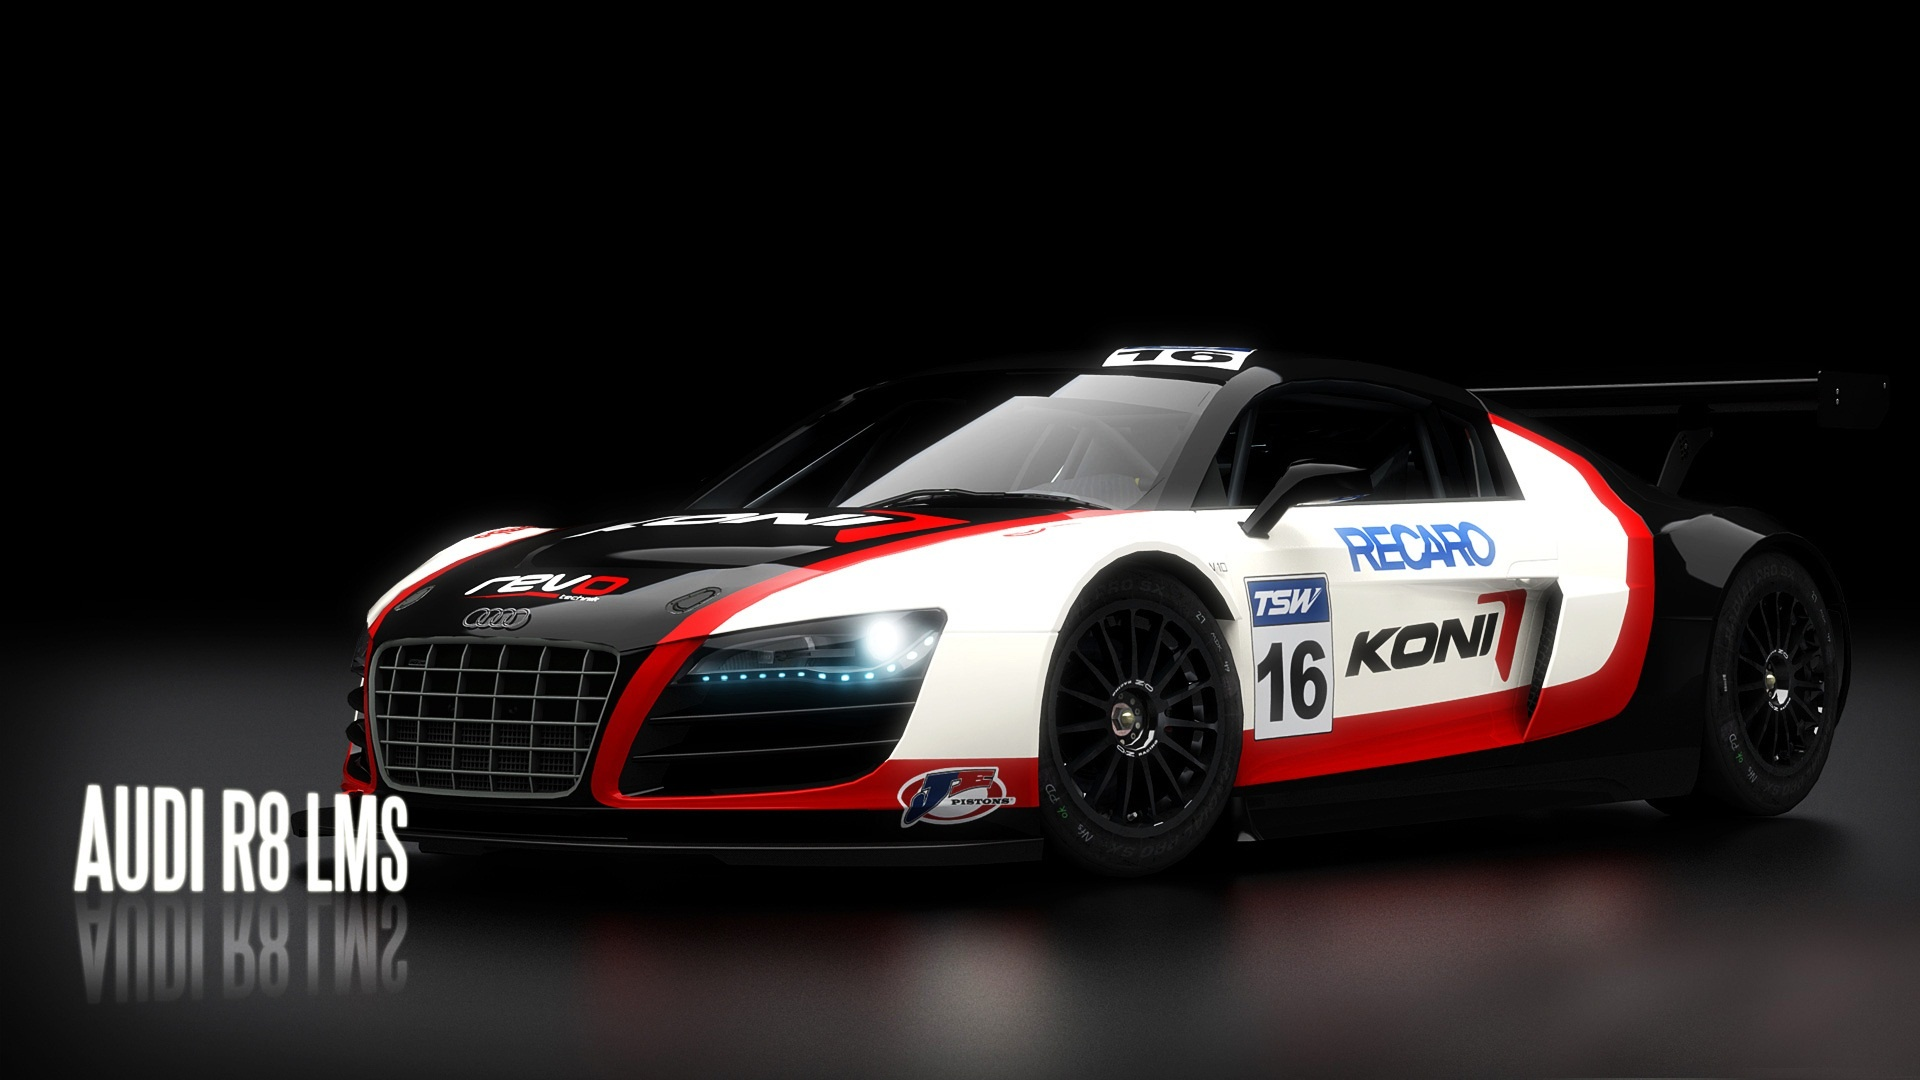 Cars Wallpapers Audi R8 Lms 4587 1920x1080 pixel Exotic Wallpaper 1920x1080